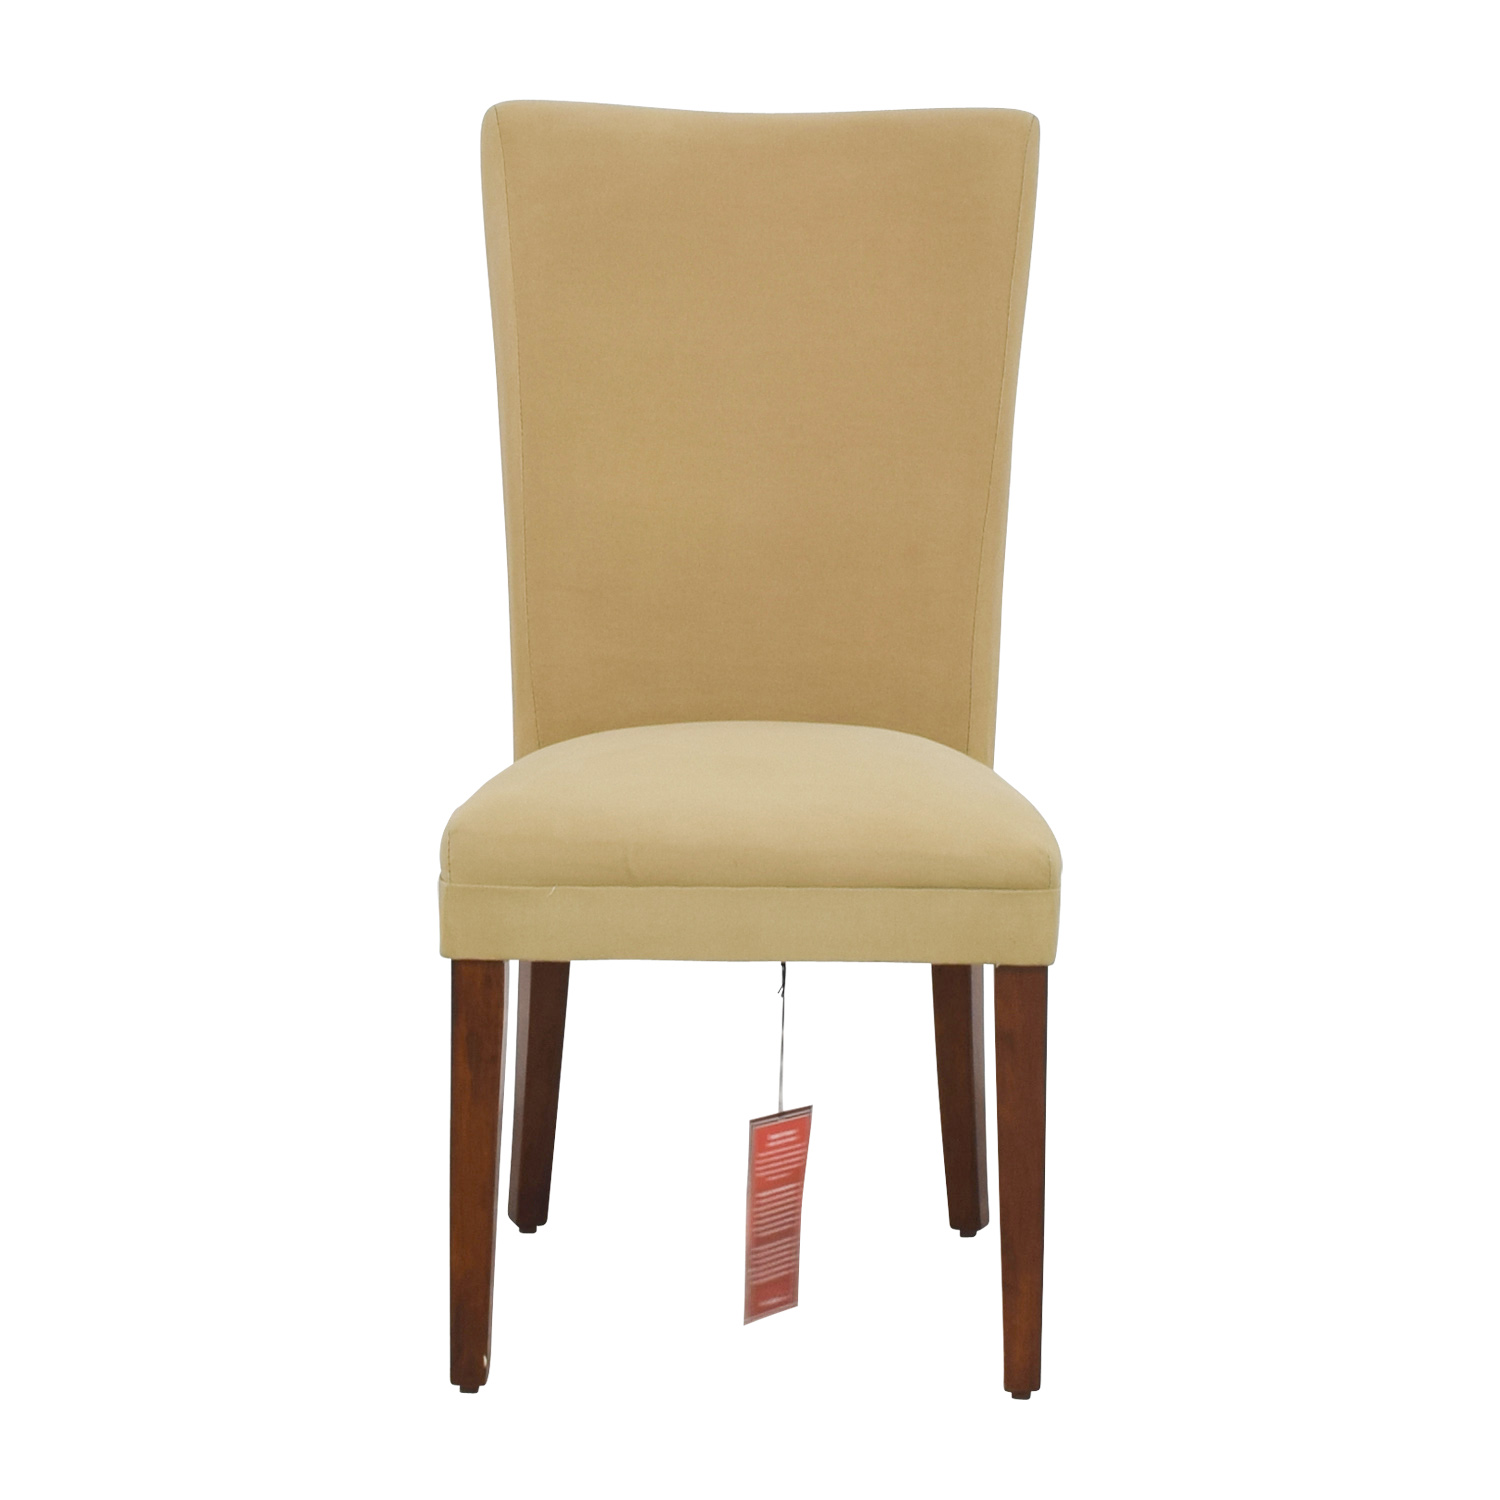 Coaster High Back Tan Upholstered Chair / Sofas